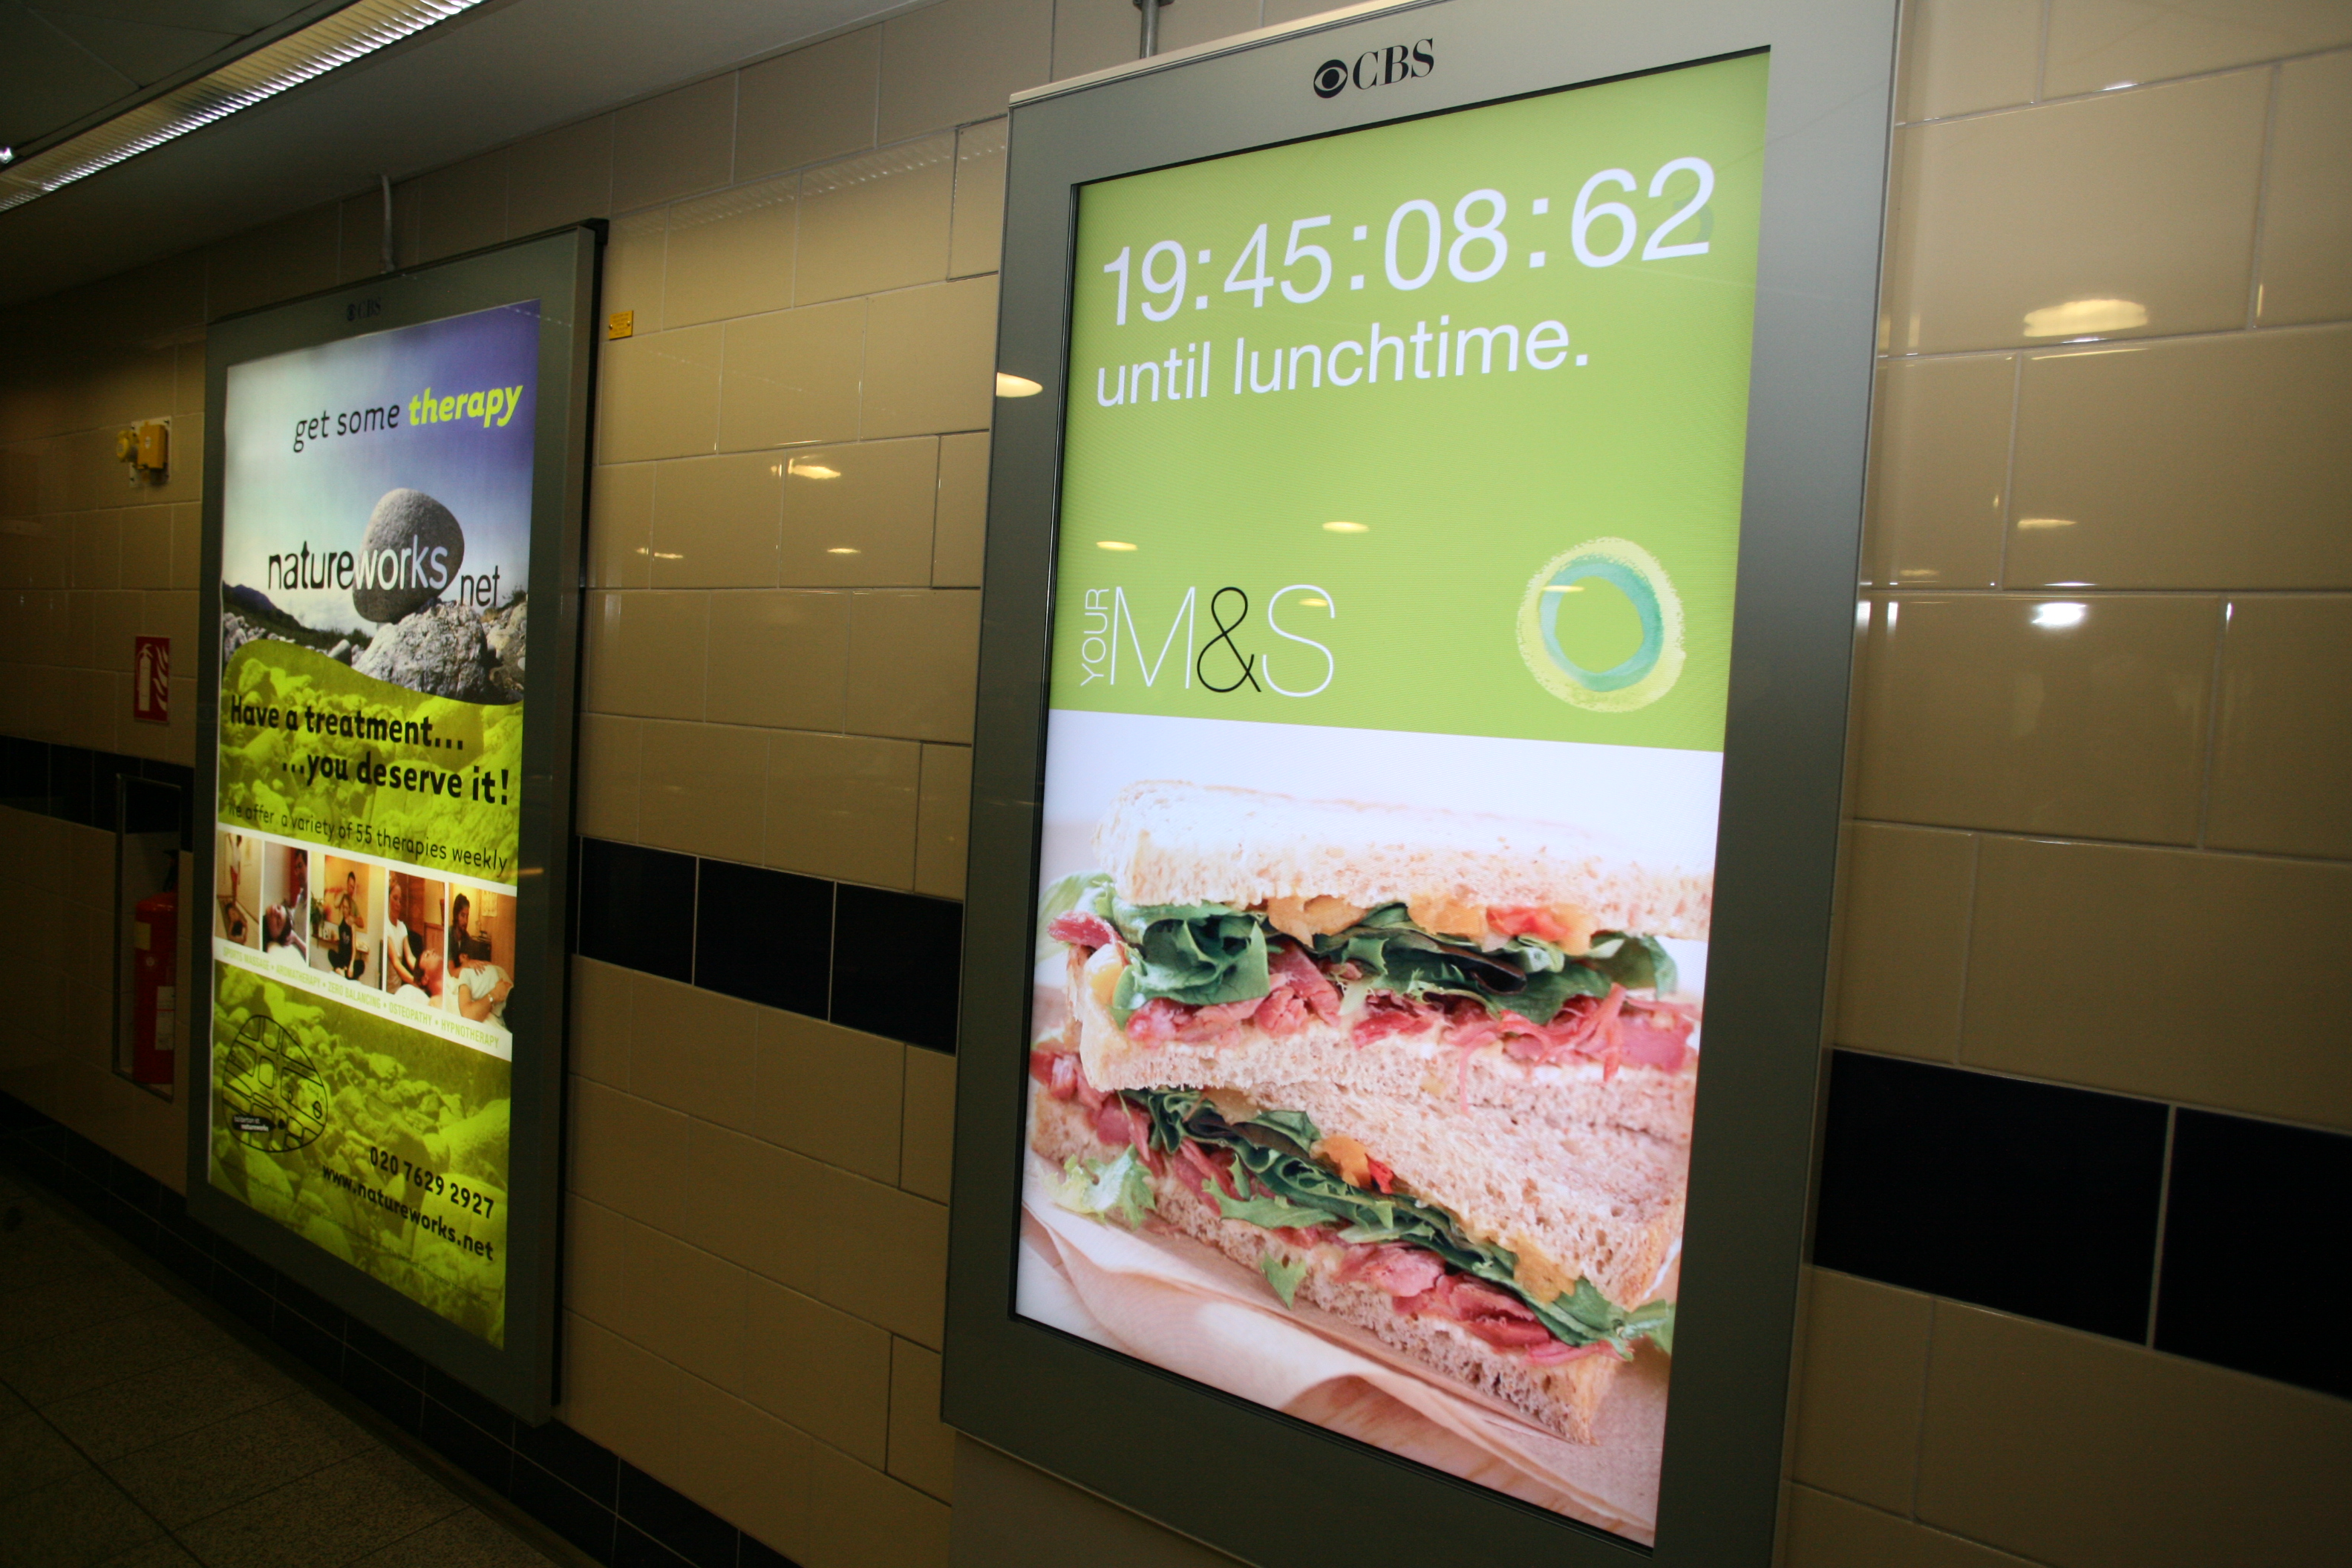 Marks & Spencer's campaign on London Underground digital LCD screens